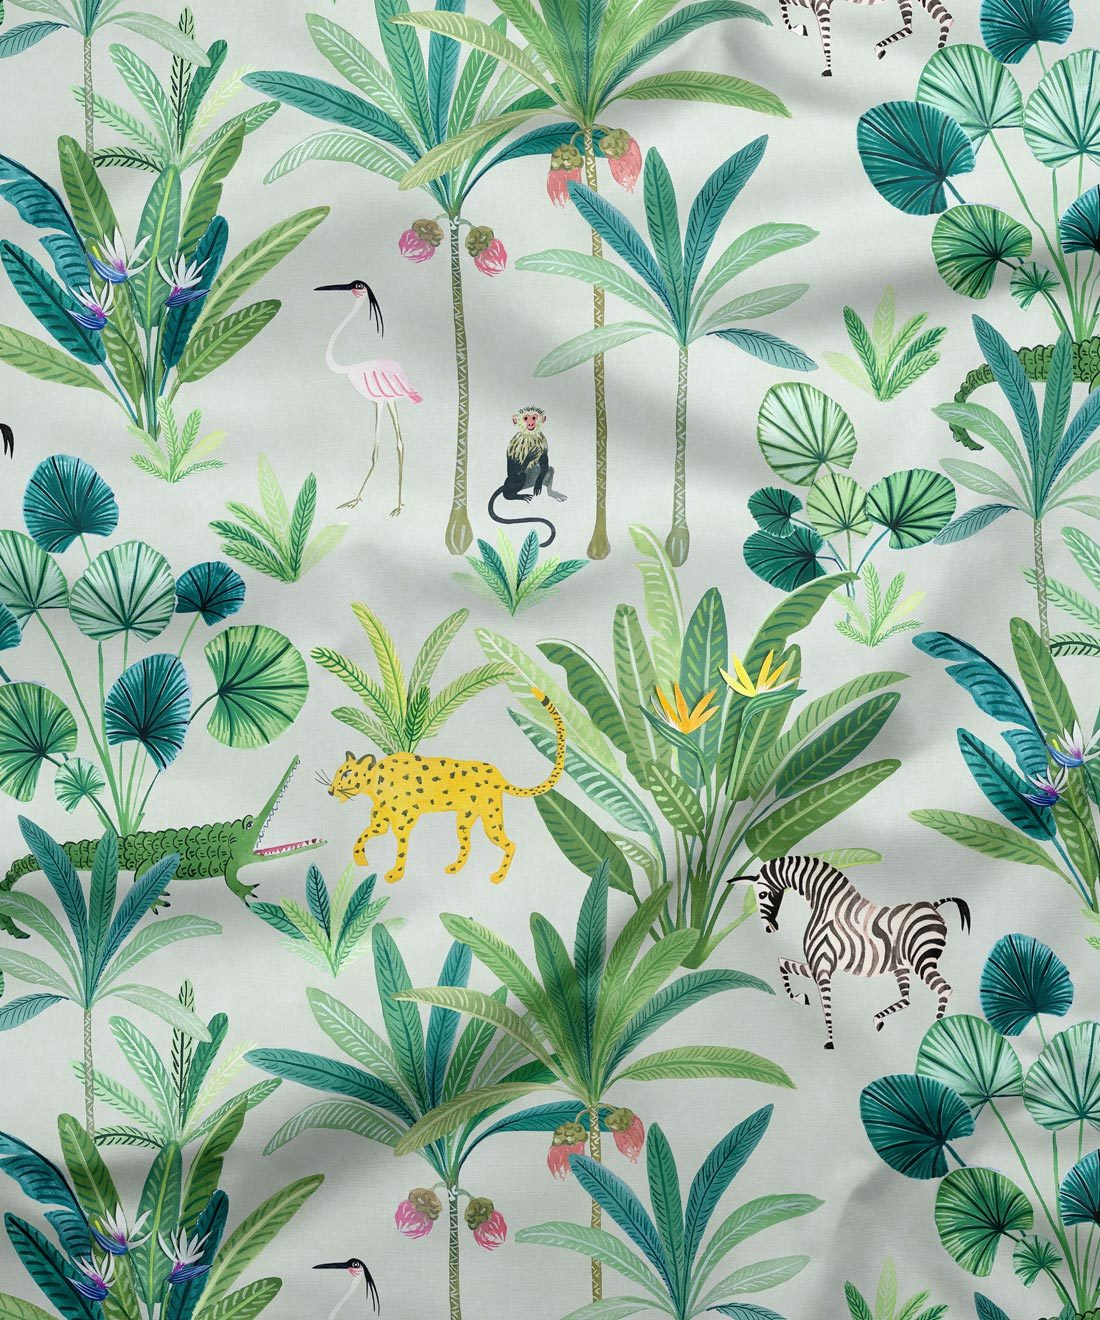 Animal Kingdom Fabric Cream